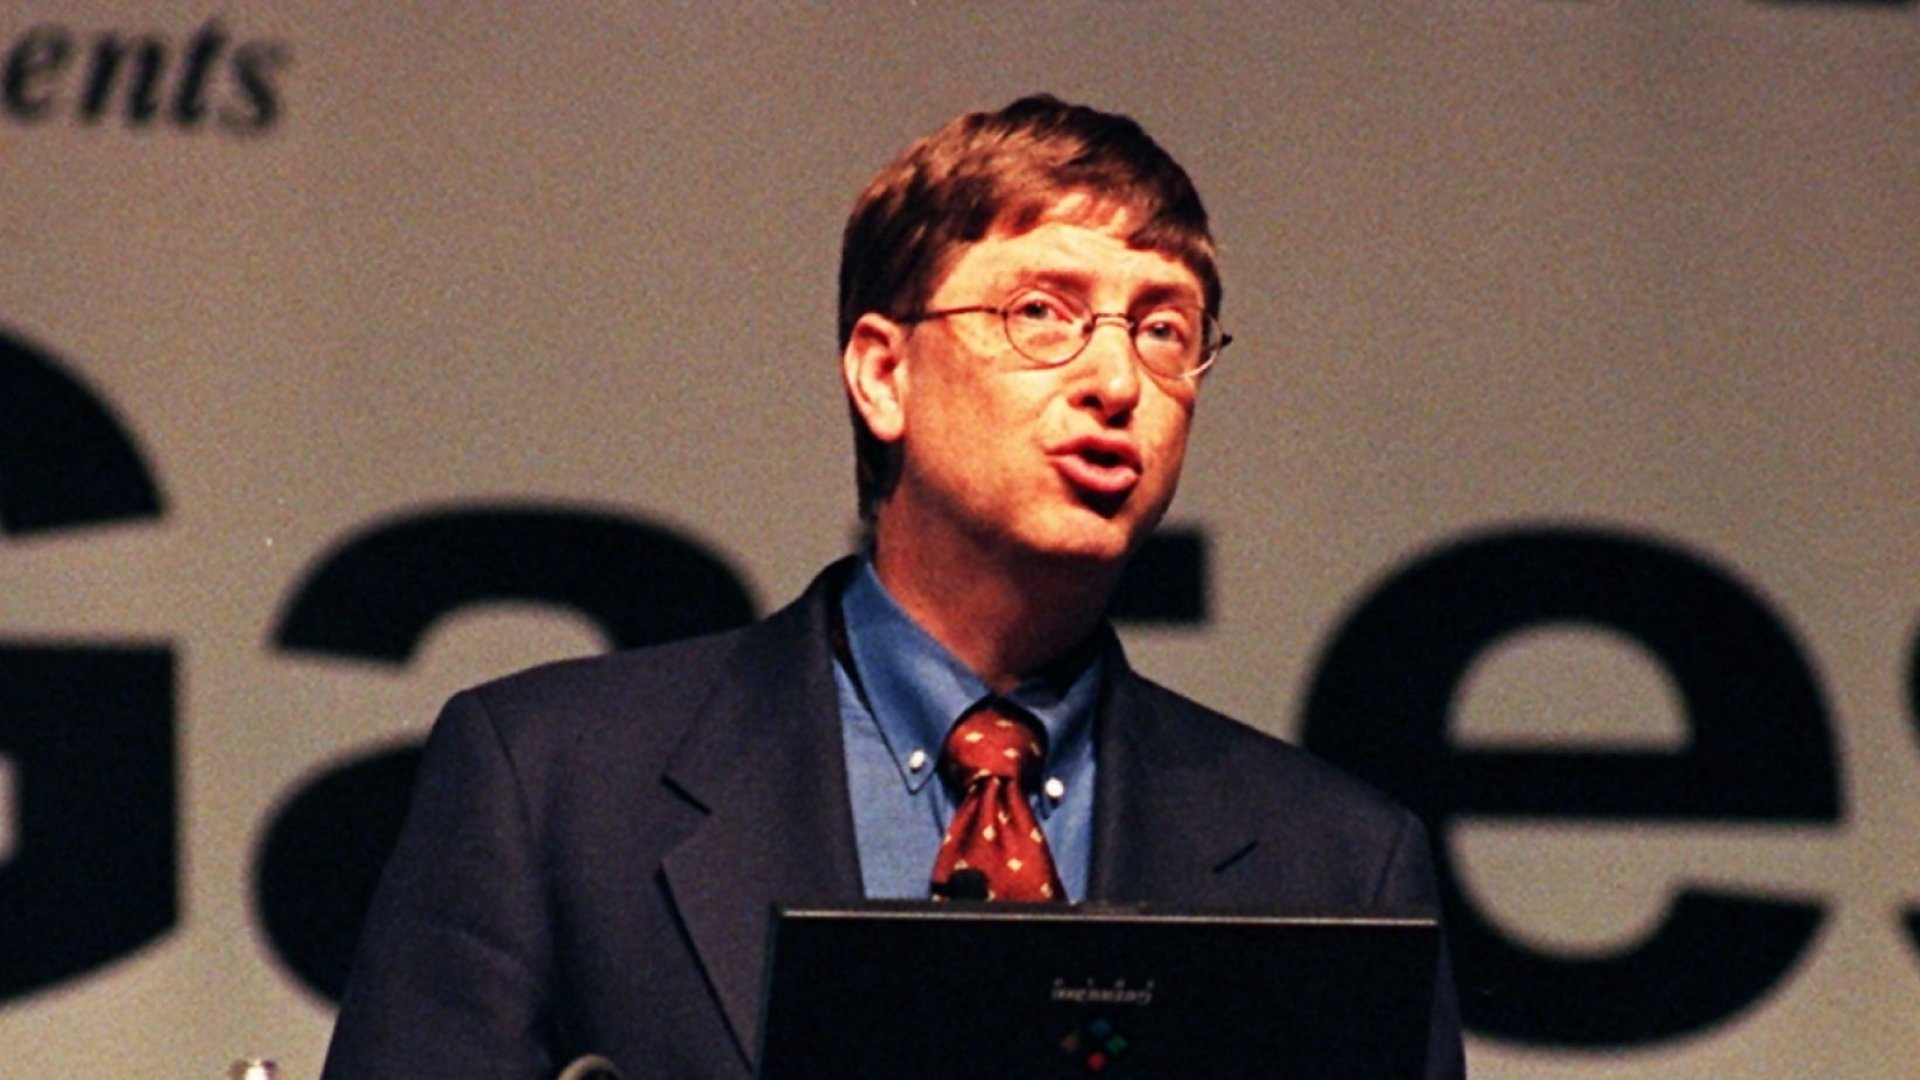 This 1 Bill Gates Quote From 20 Years Ago Nailed Today's Definition of Great Marketing